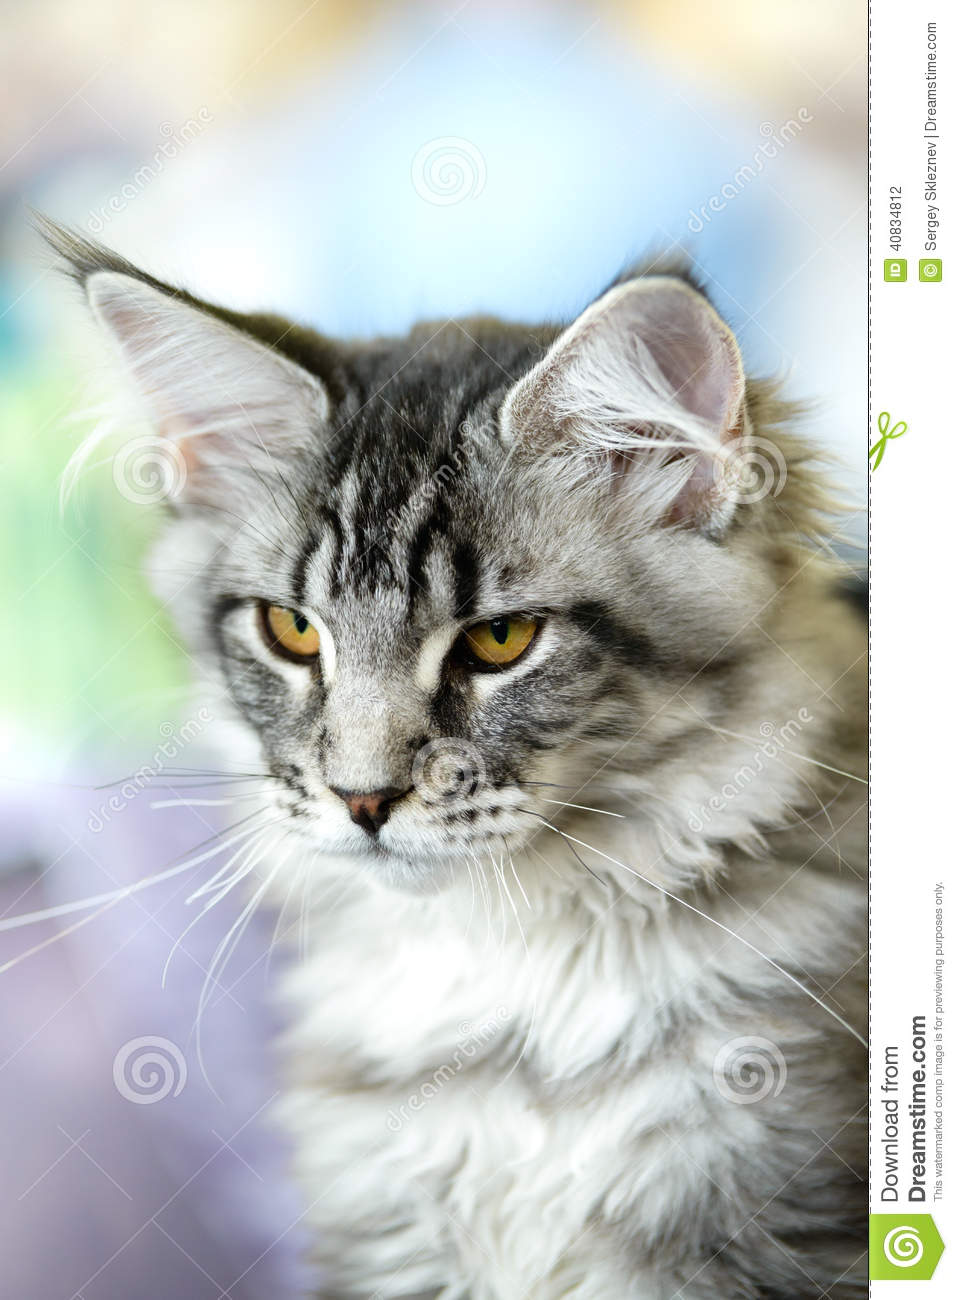 Grey-white Tabby Maine Coon Cat Stock Photo - Image: 40834812 Tabby Maine Coon Kitten